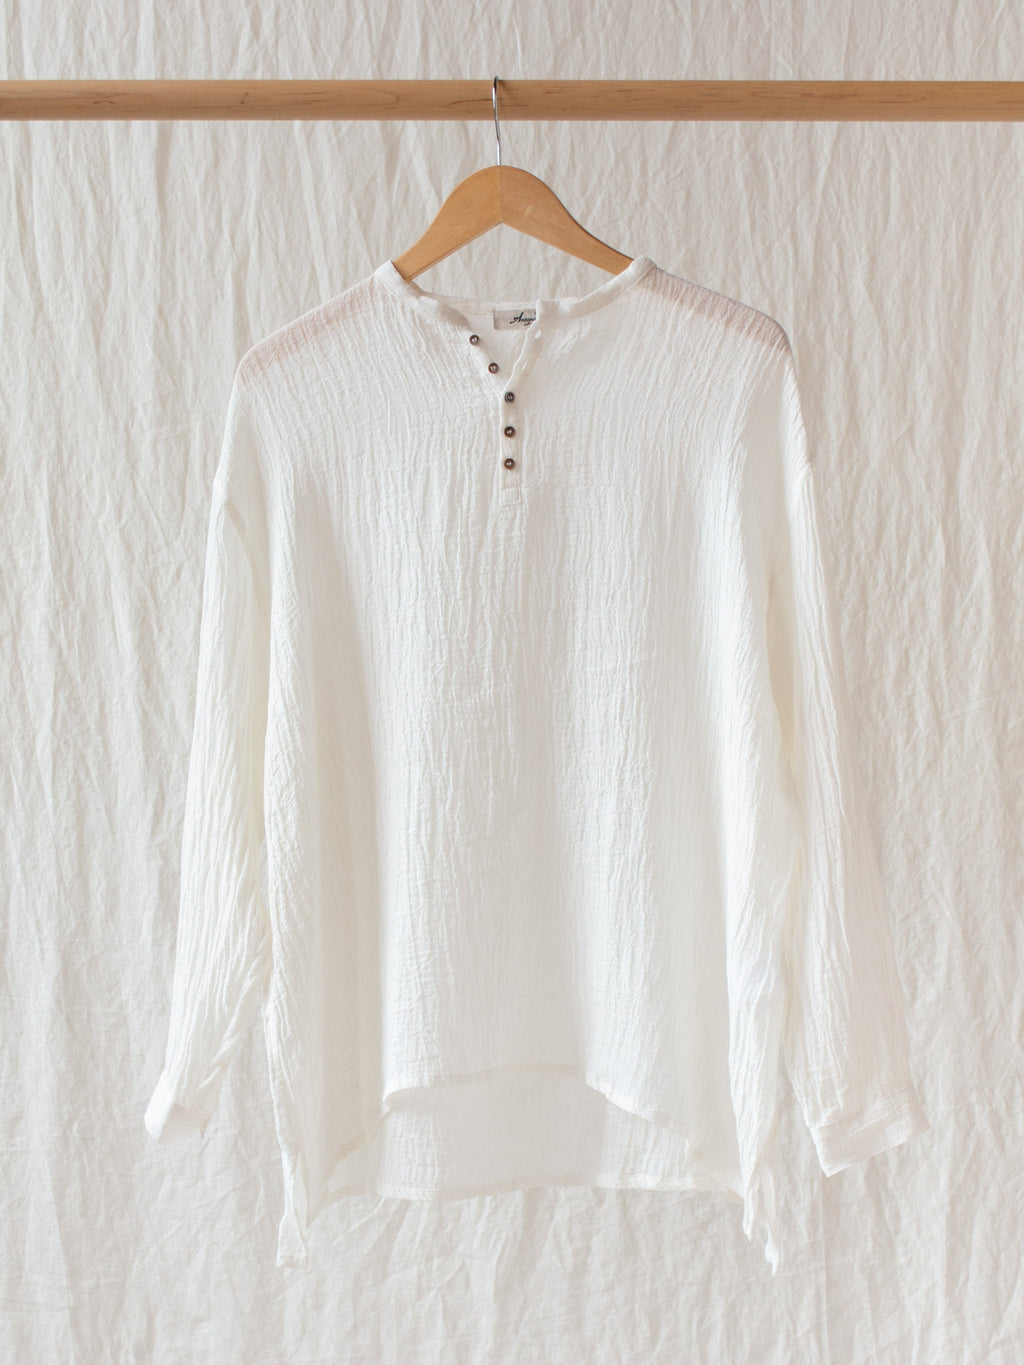 Namu Shop - Ichi Antiquites Linen Voile Blouse - White